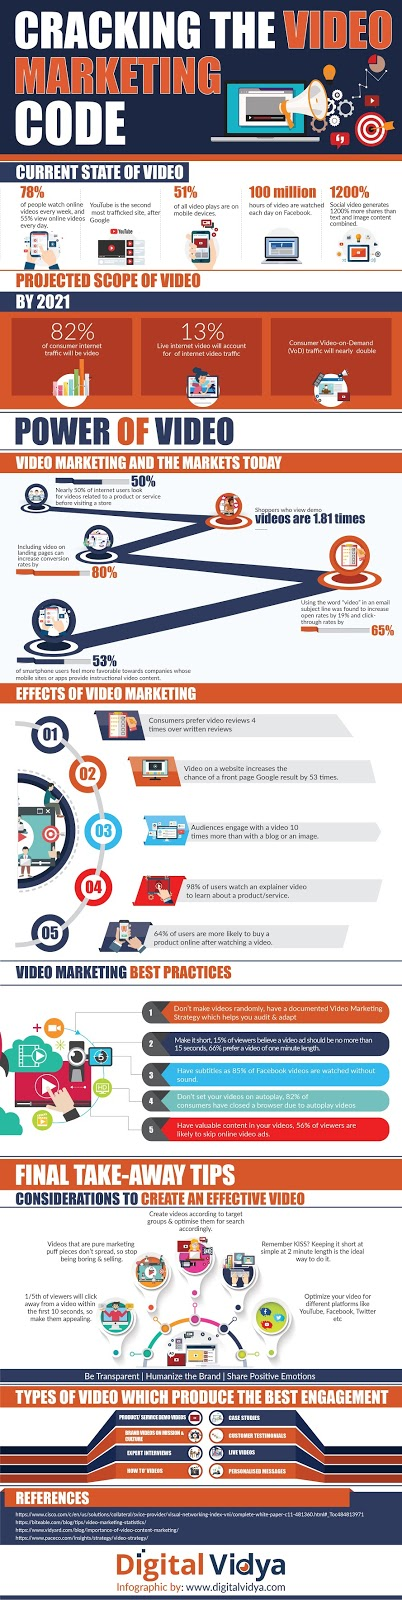 Cracking the Code on Video Marketing Success [Infographic]